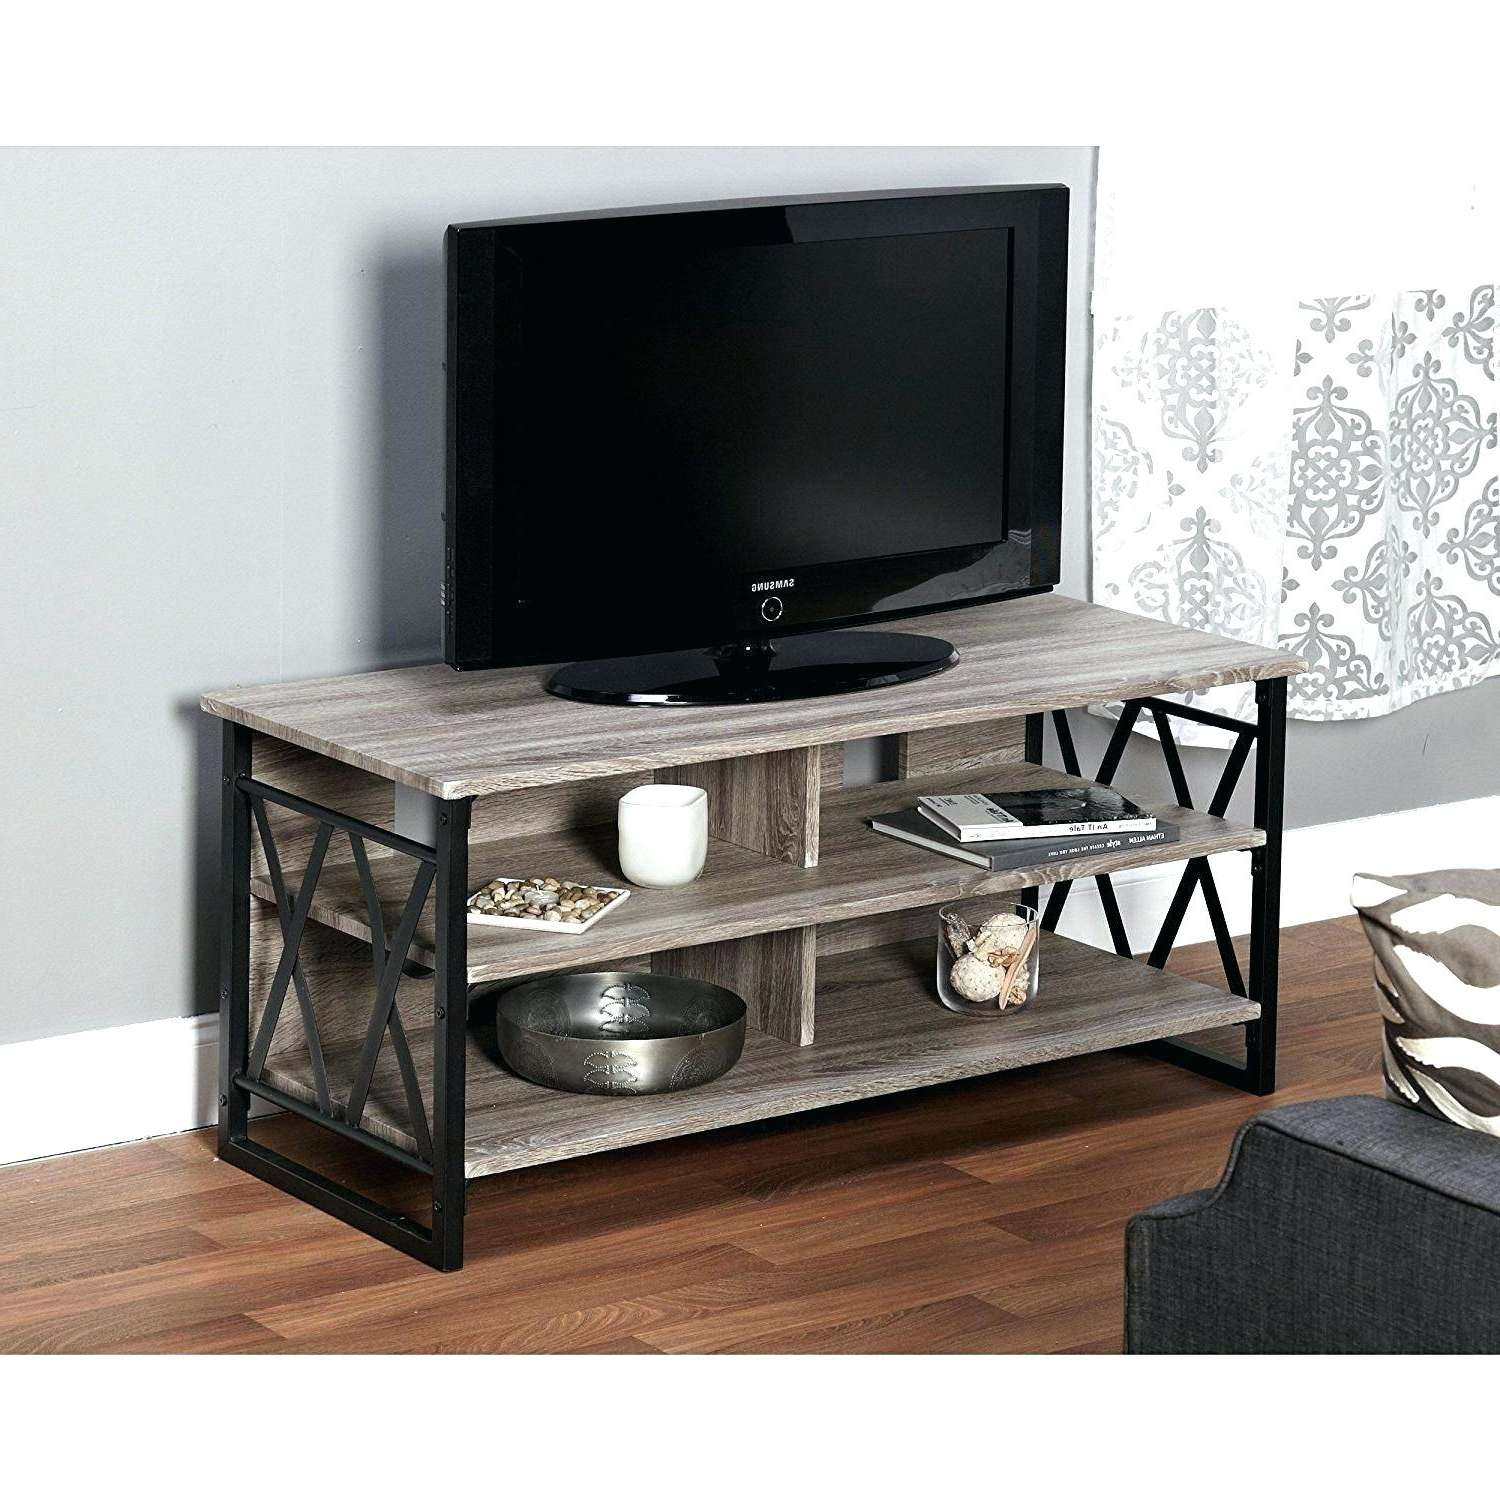 Tv Stand : Oriental Tv Stand Black Oriental Tv Stand (View 20 of 20)